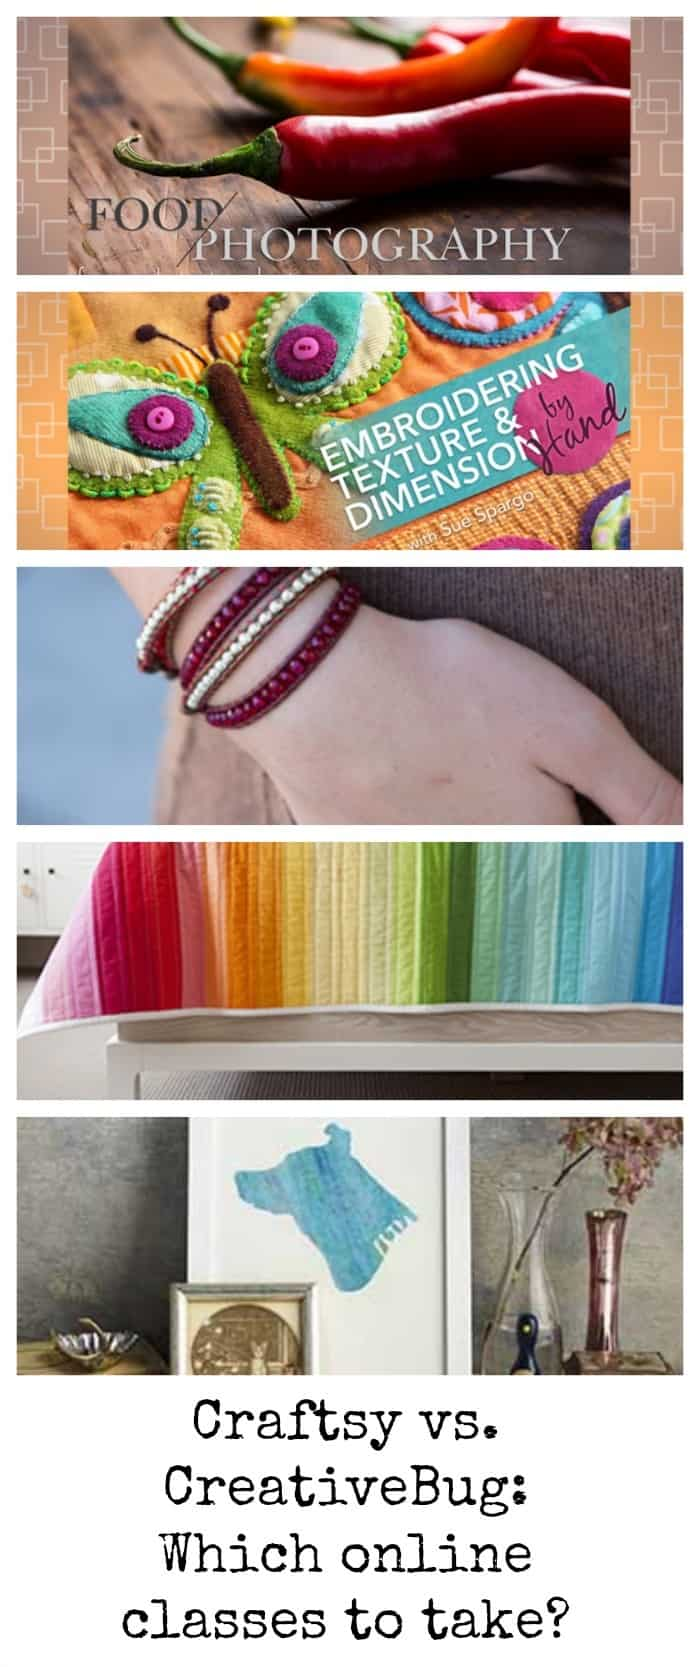 Comparing Craftsy to CreativeBug online craft classes